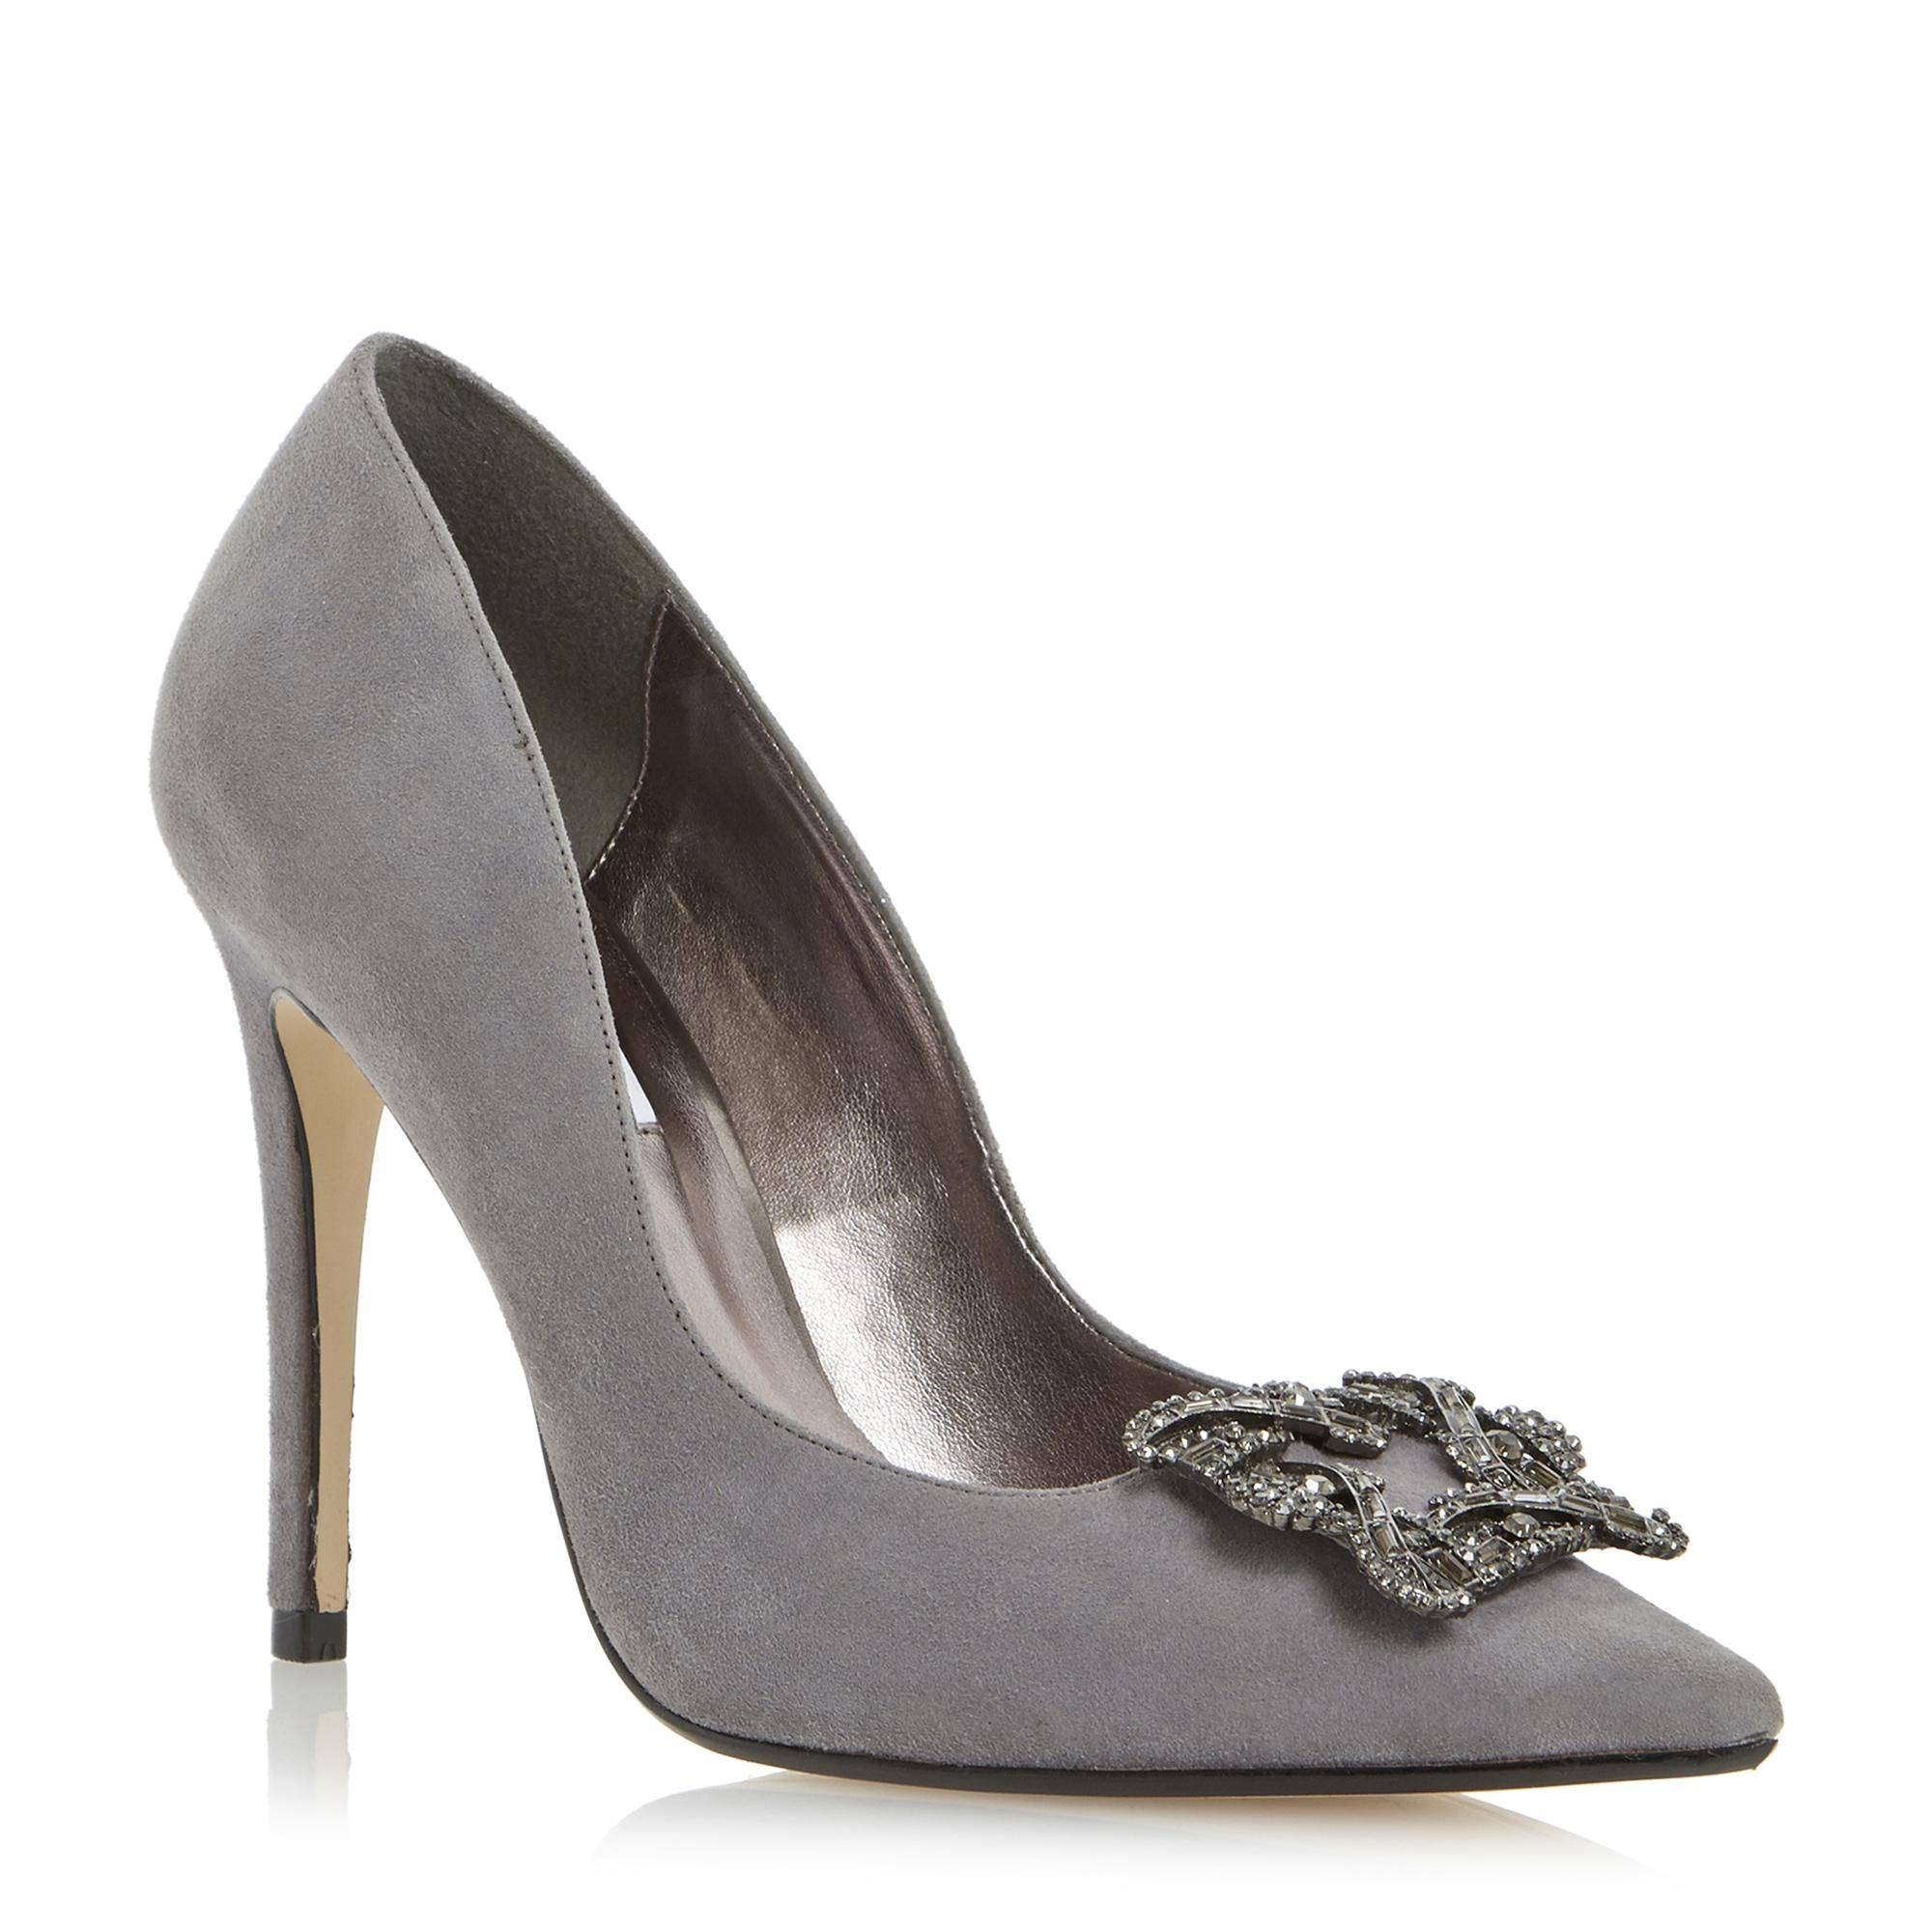 34dfd9ea4bbd1 DUNE LADIES BREANNA - Jewelled Square Brooch Pointed Toe Court Shoe - pale  grey | Dune Shoes Online